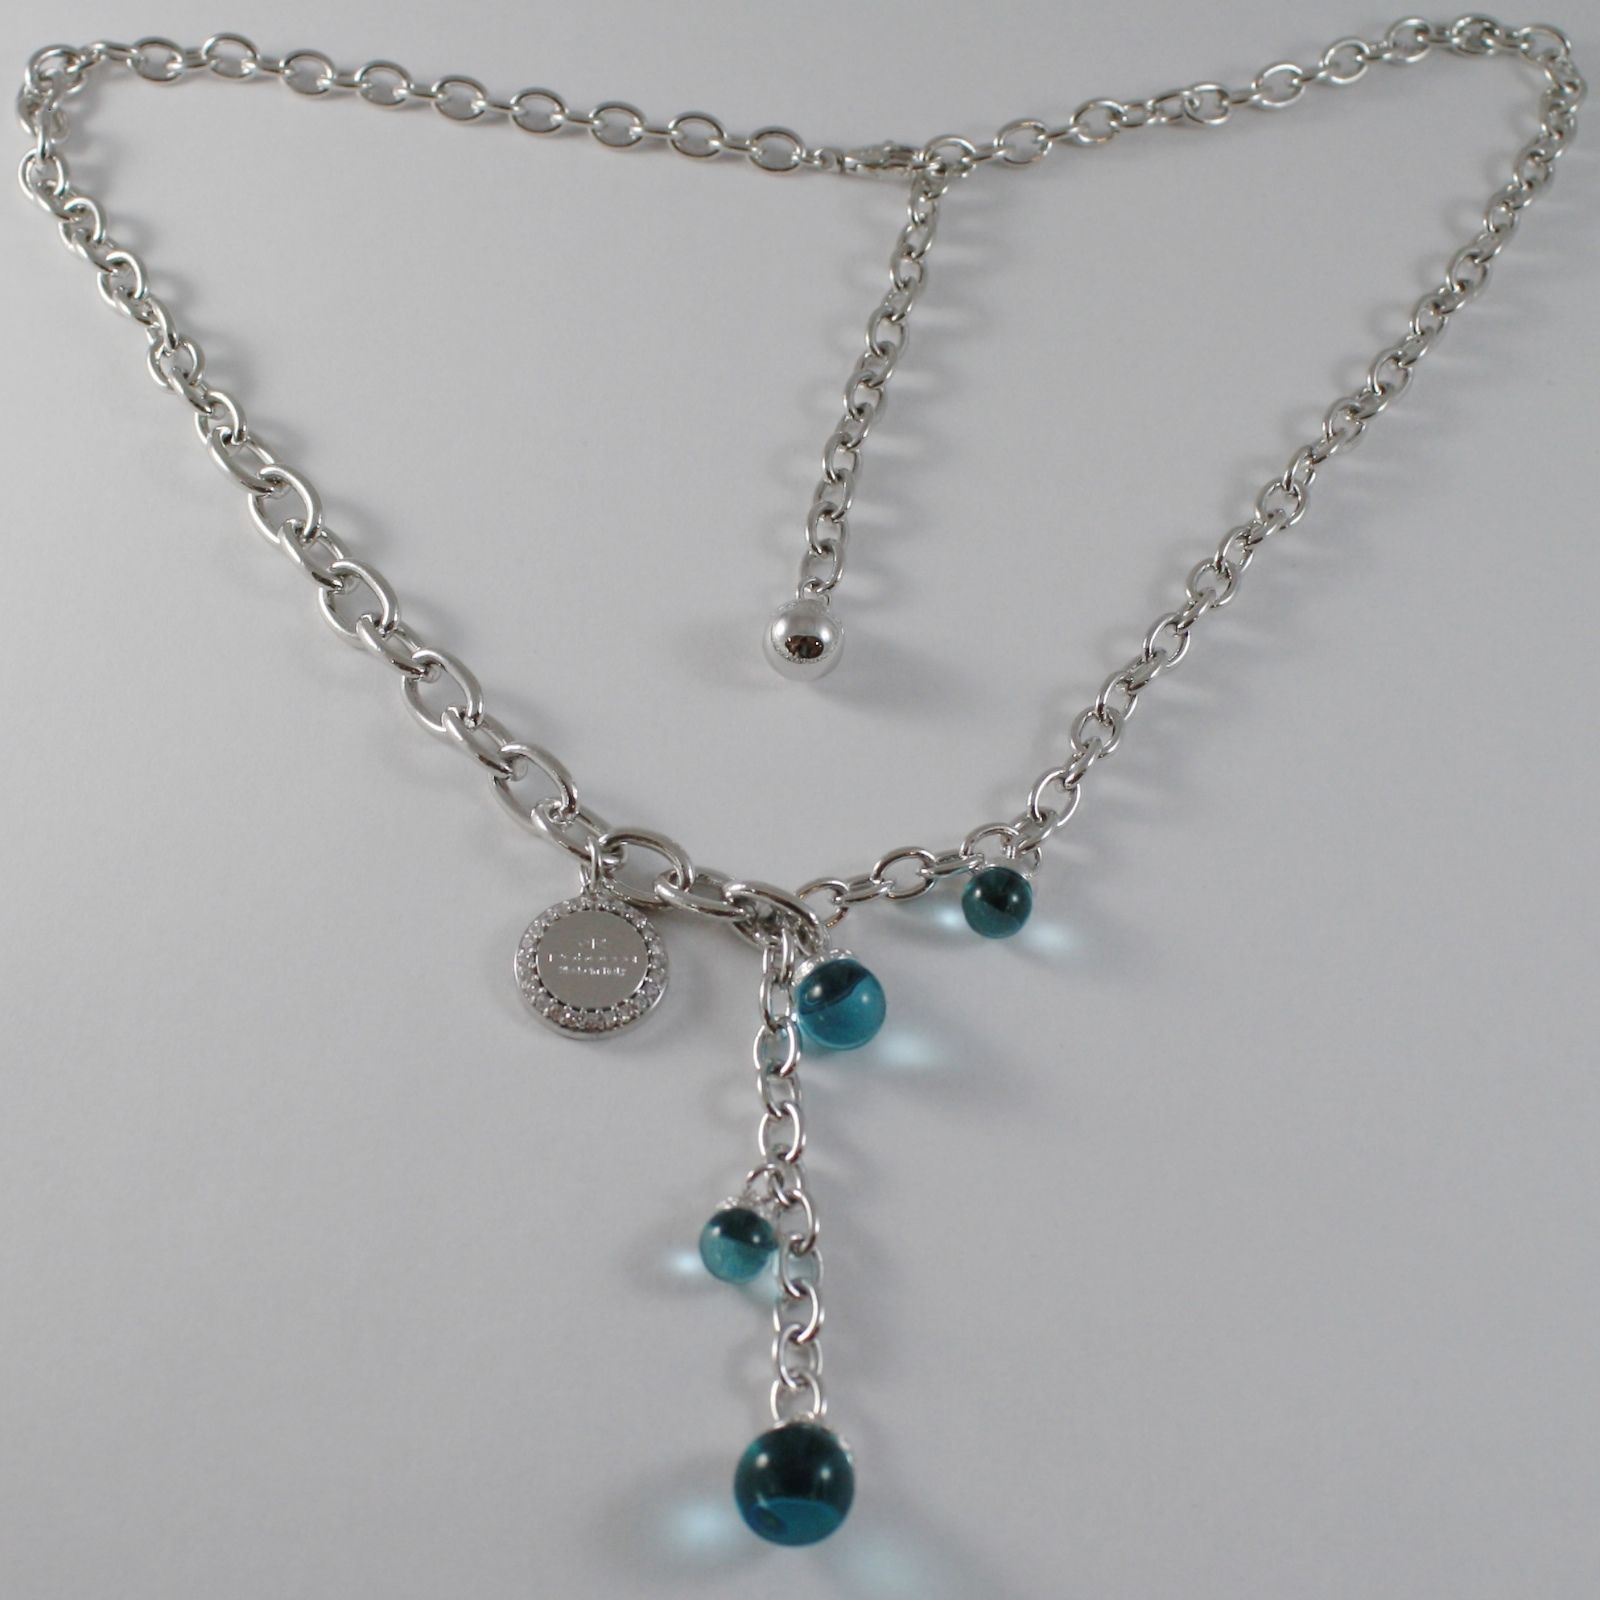 WHITE GOLD BRONZE REBECCA OVAL LARIAT NECKLACE BLUE BALL BHSKBT05 MADE IN ITALY